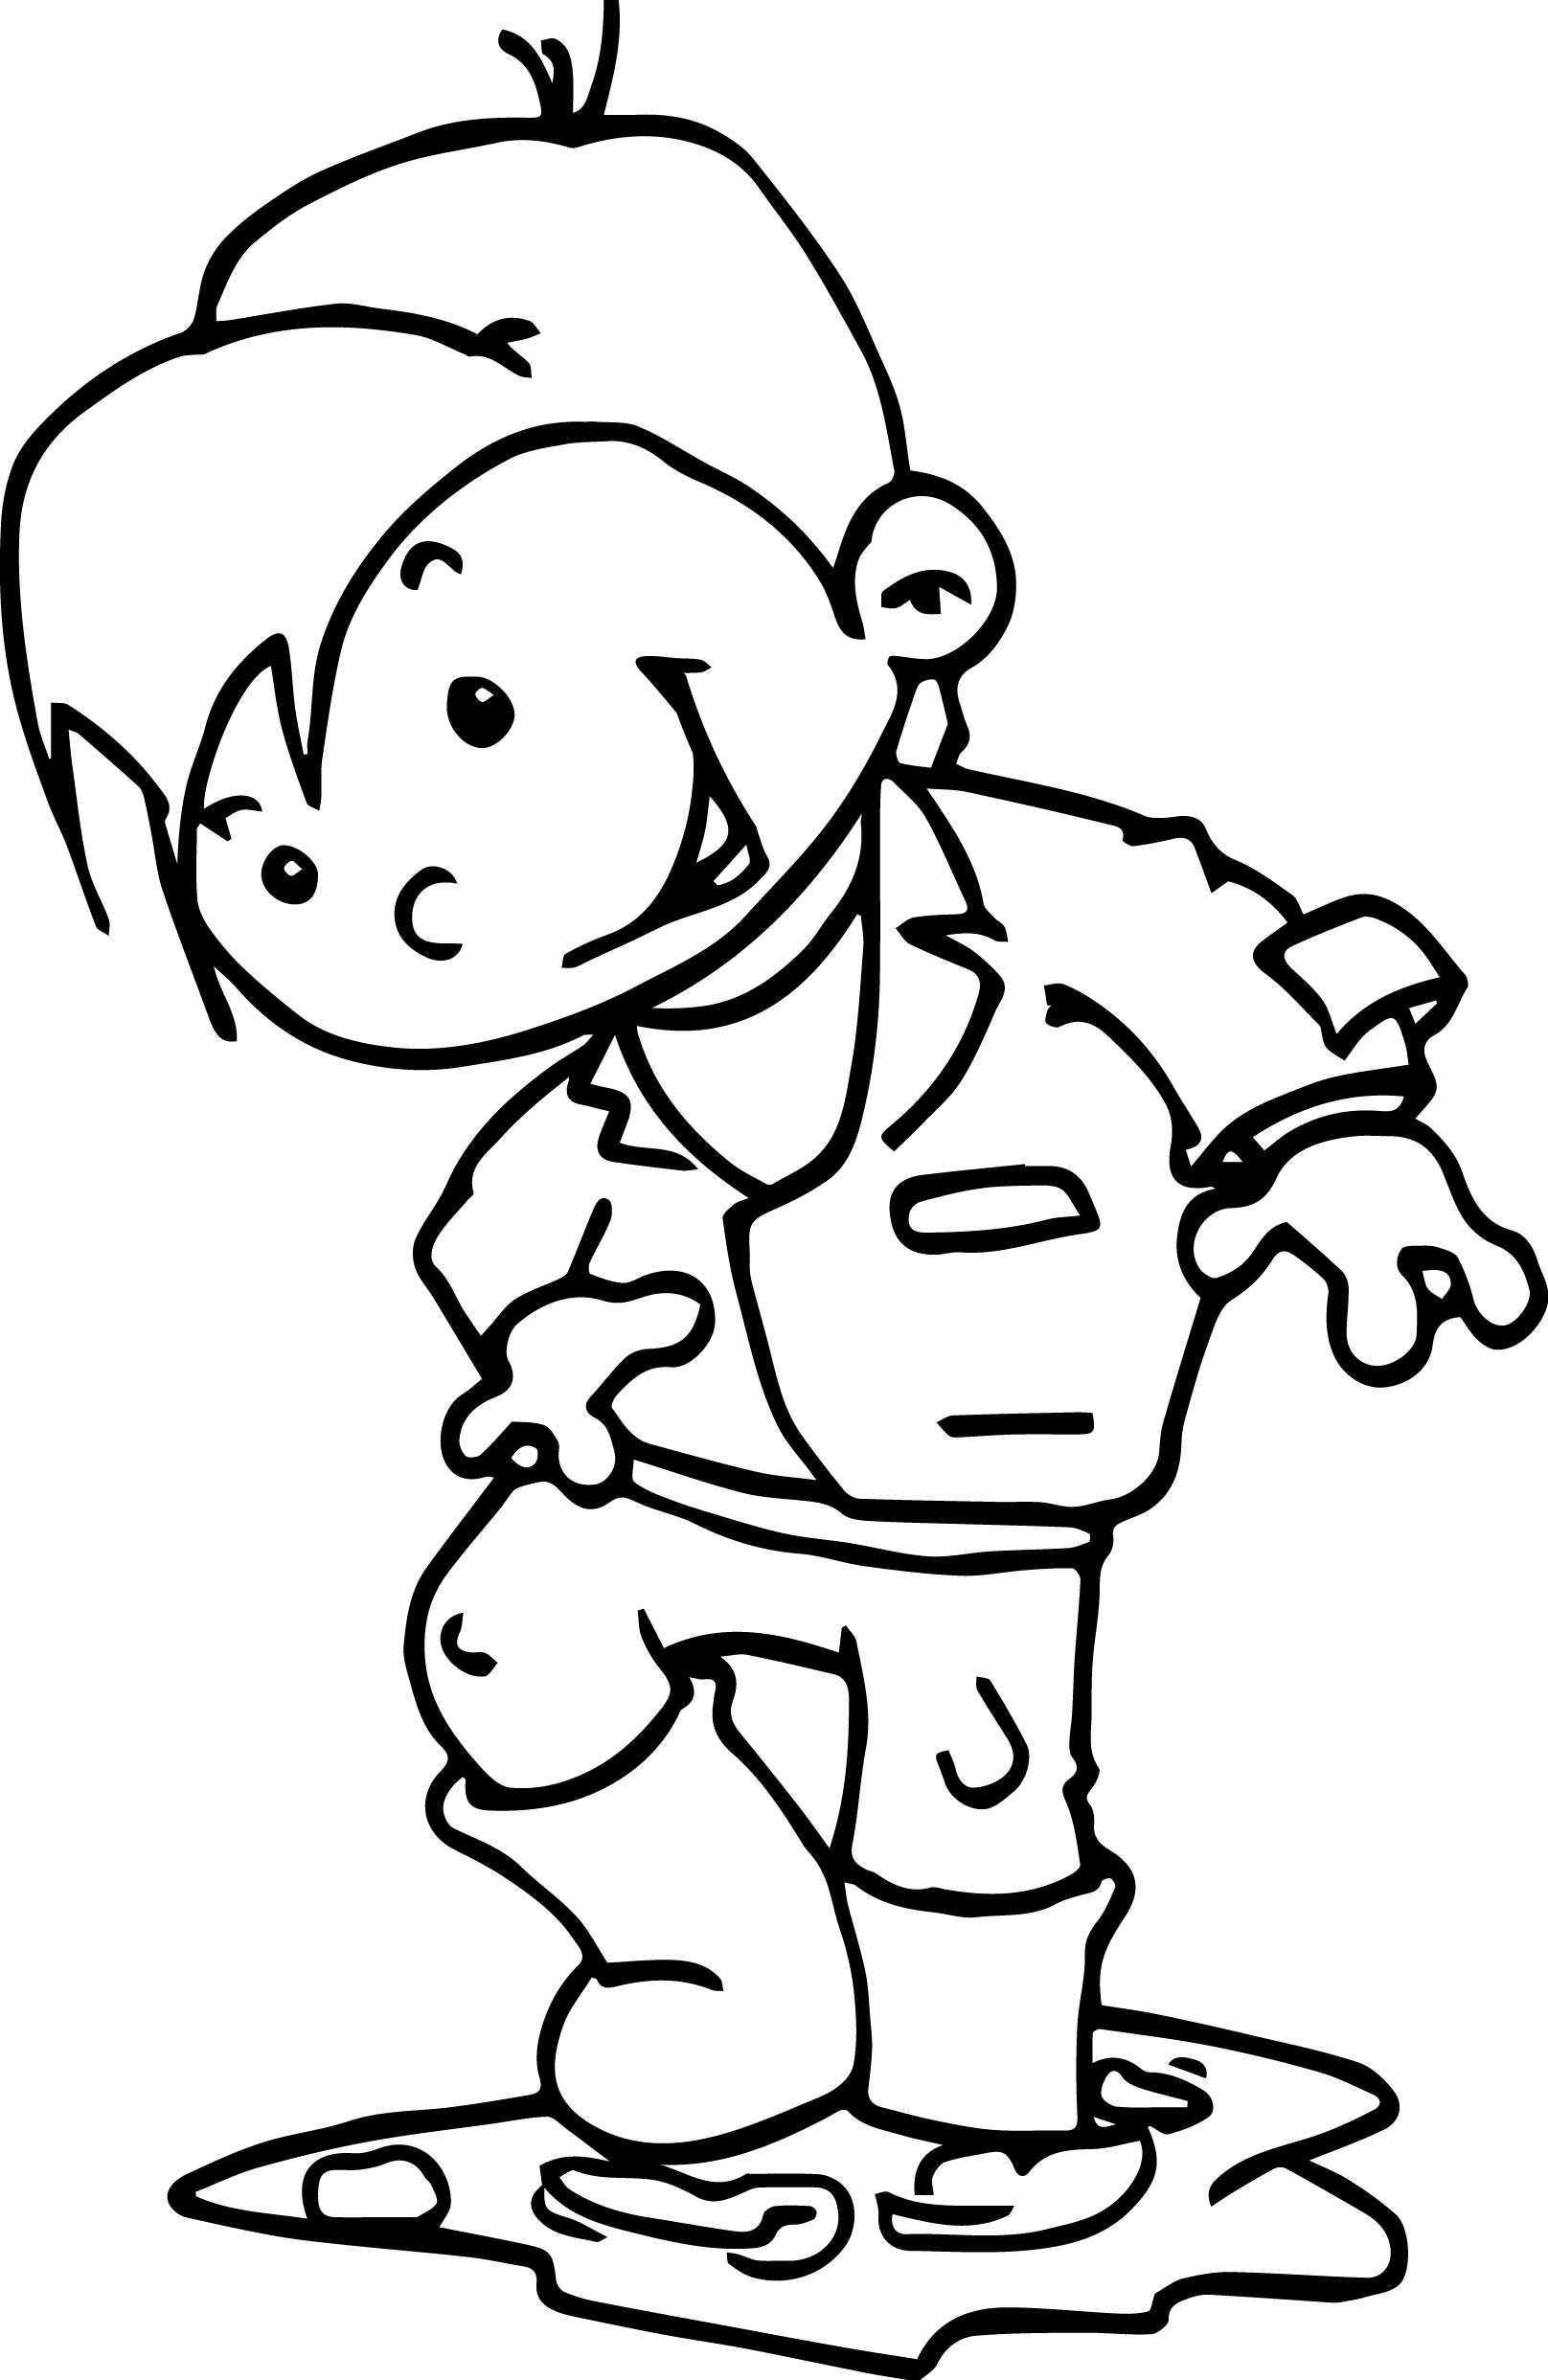 fall coloring pages for preschoolers - autumn image free kindergarten coloring page